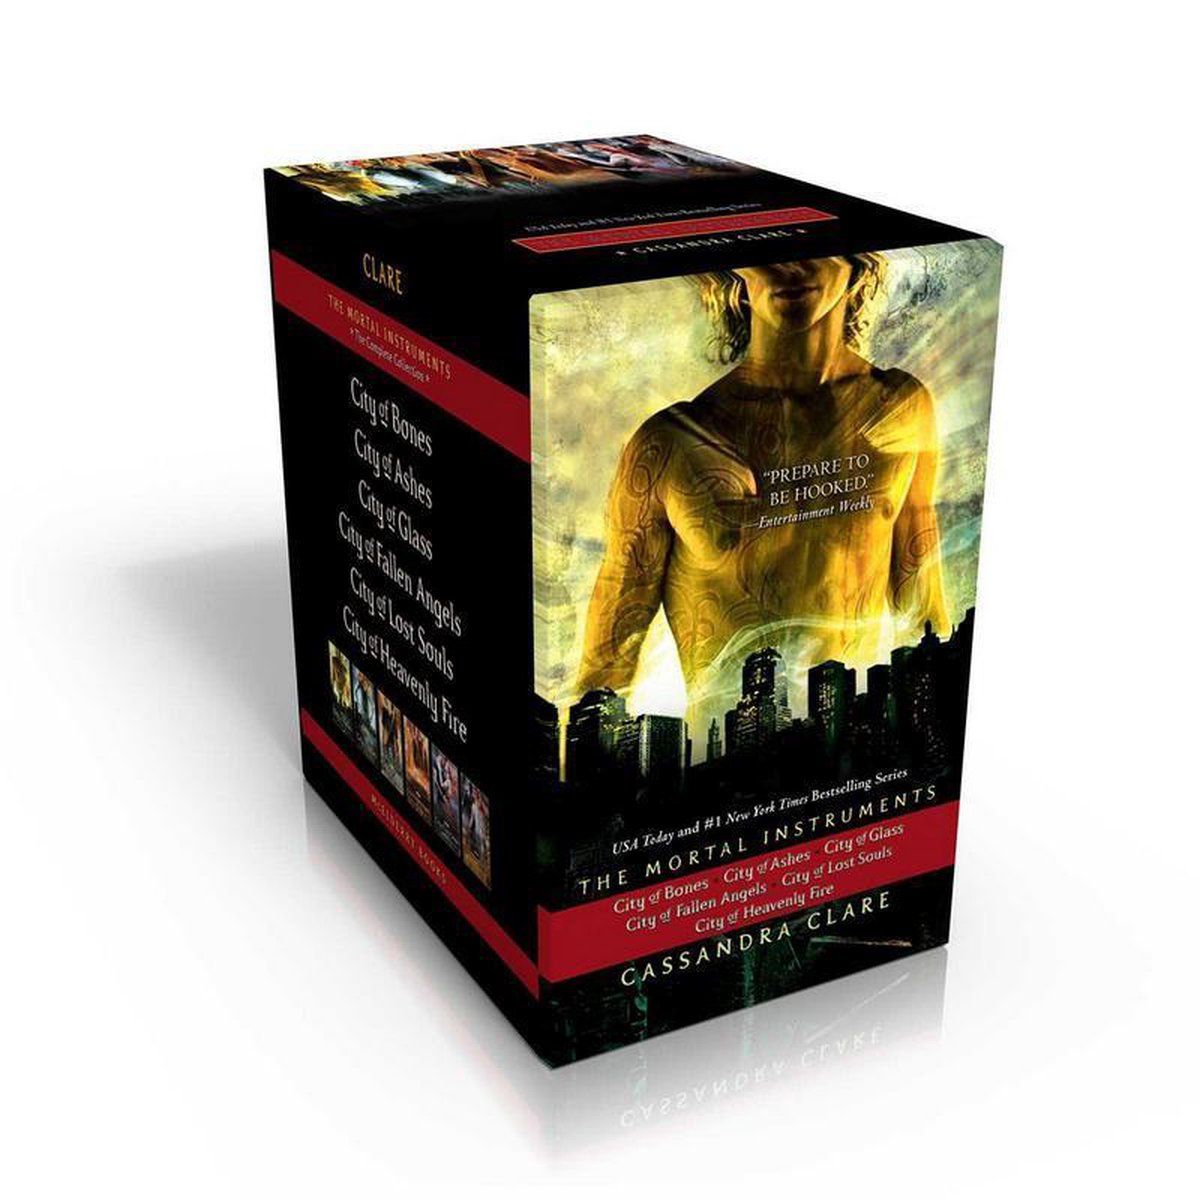 The Mortal Instruments, the Complete Collection - Cassandra Clare